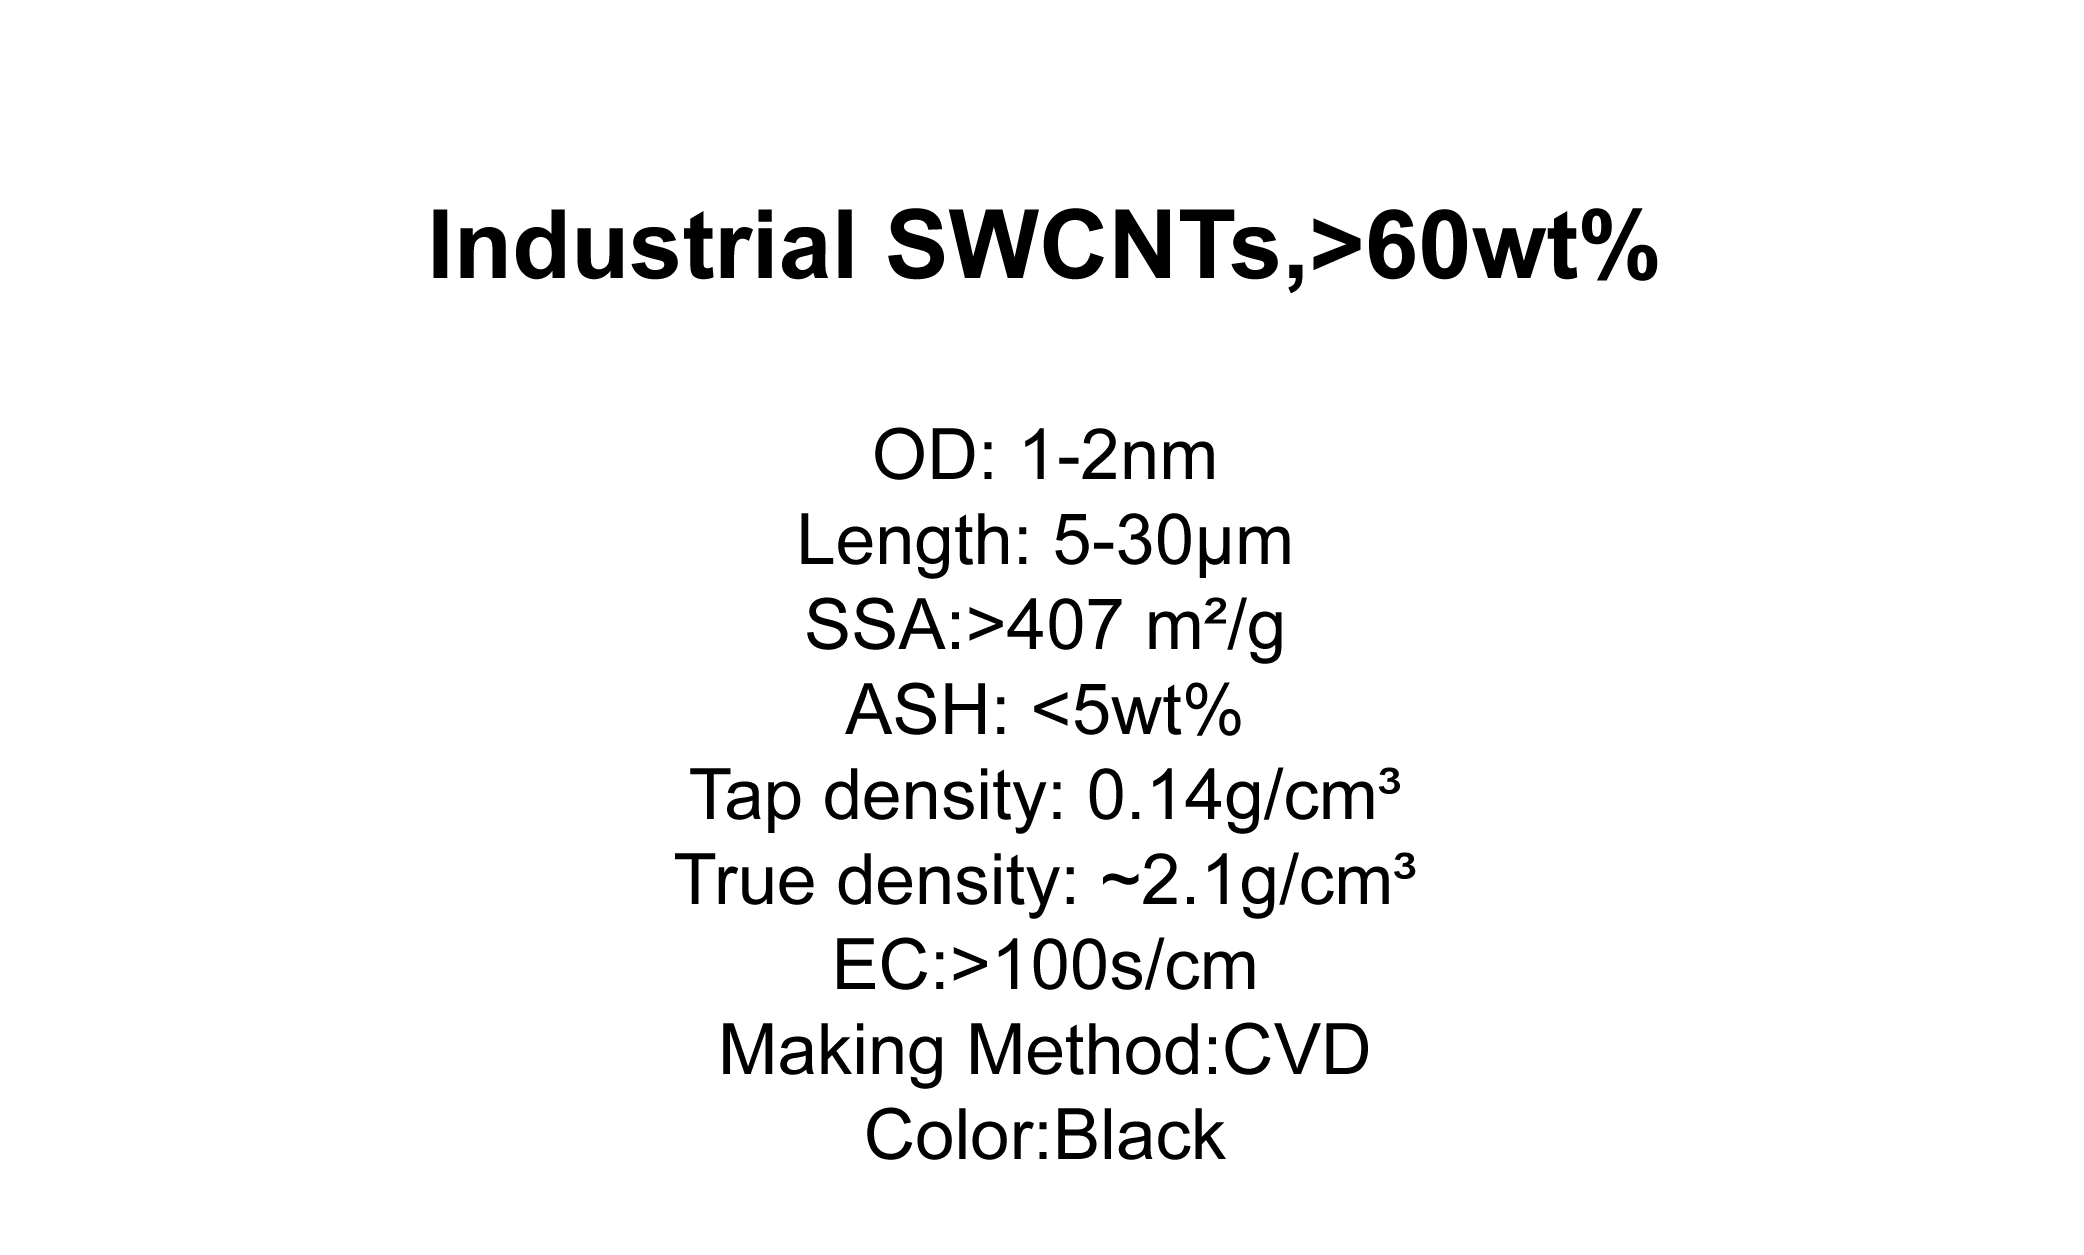 Industrial SWCNTs